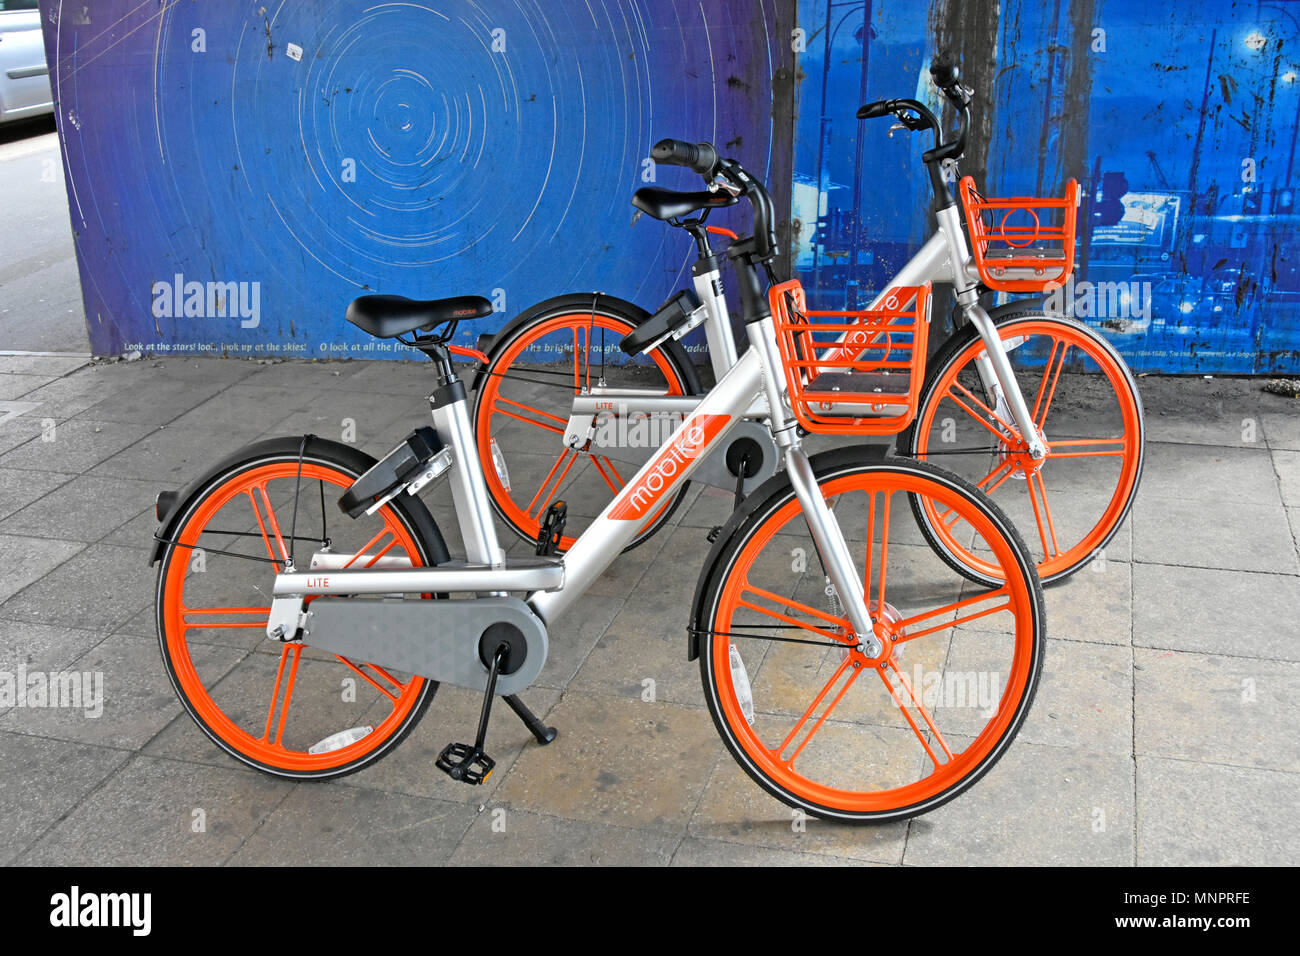 Smartphone App operated dockless Mobike Lite bike for hire from China based bicycle hiring business random parking awaiting reuse Stratford London UK - Stock Image